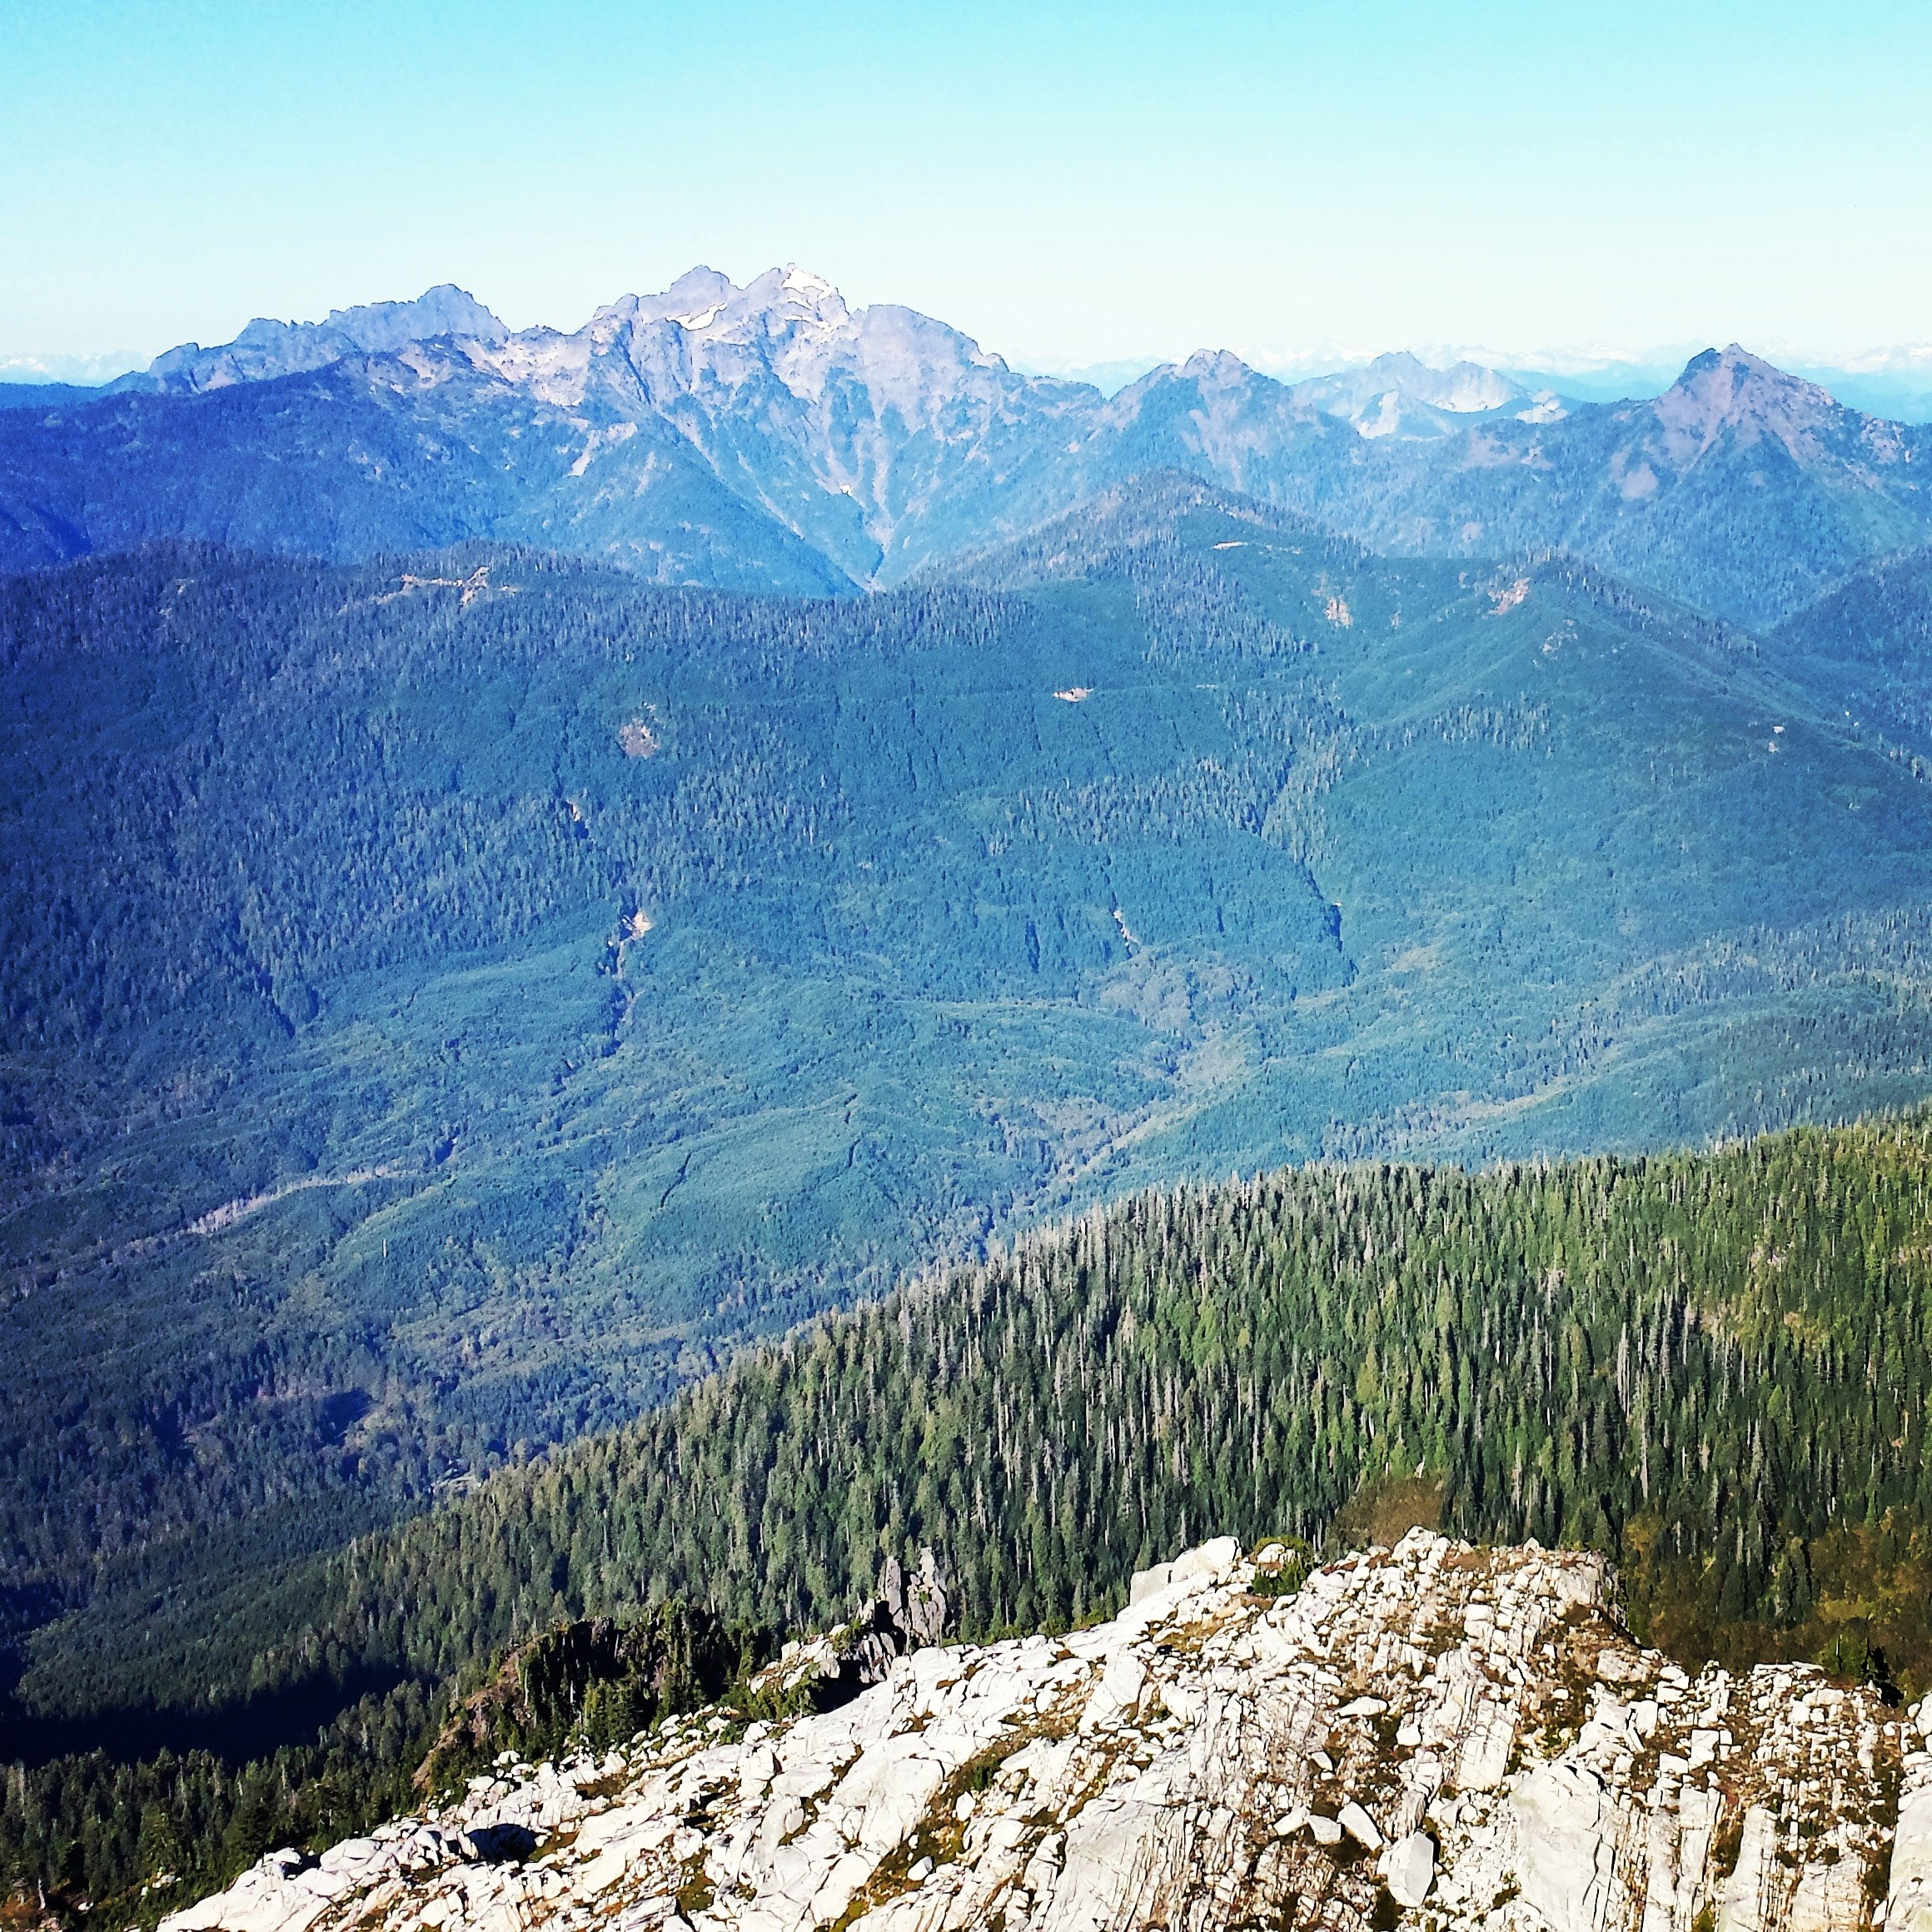 Photo Journal Mount Pilchuck, WA by Sabrina Brett 8